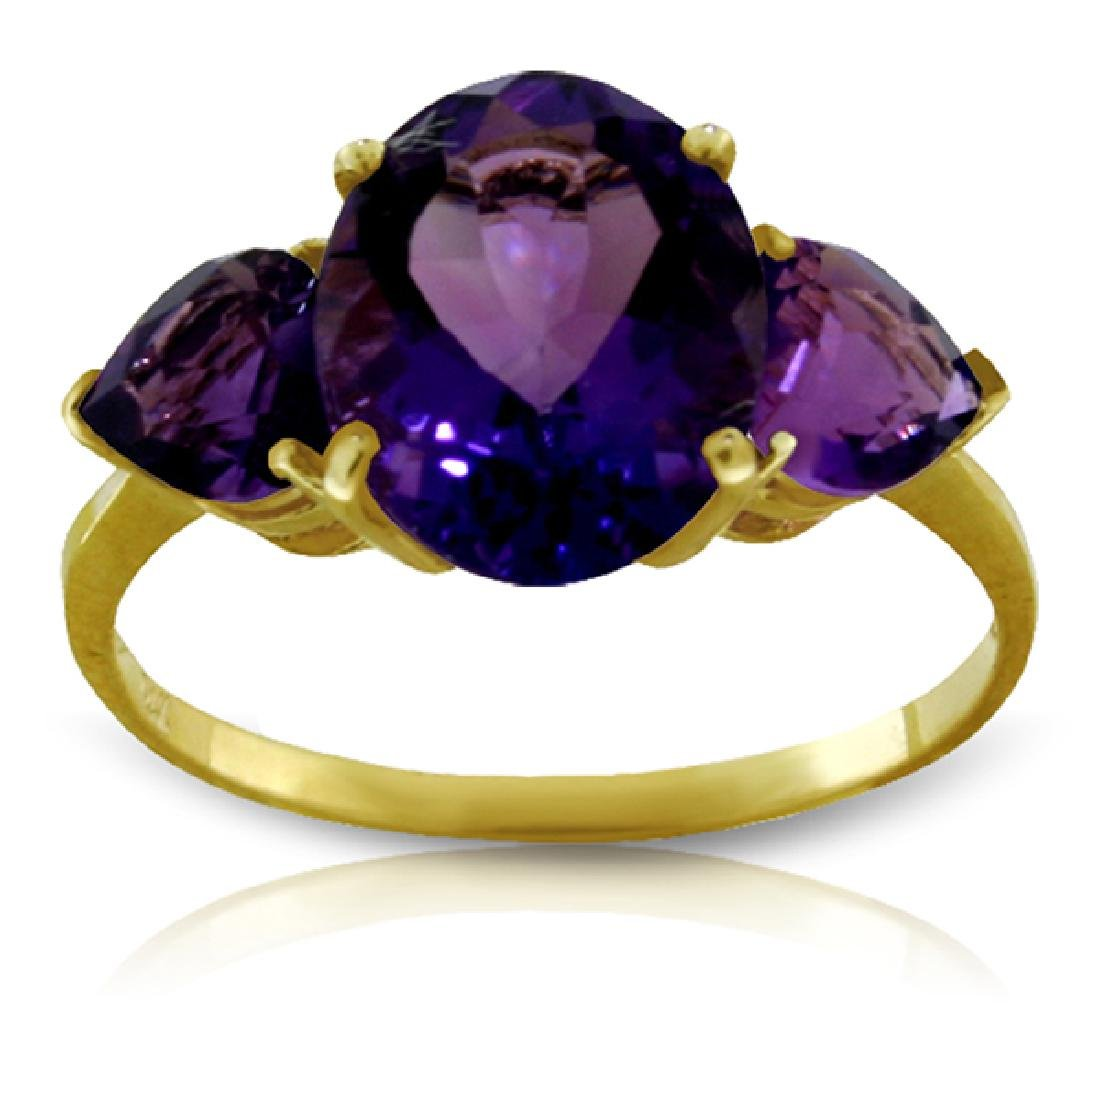 Genuine 4 ctw Amethyst Ring Jewelry 14KT Yellow Gold -